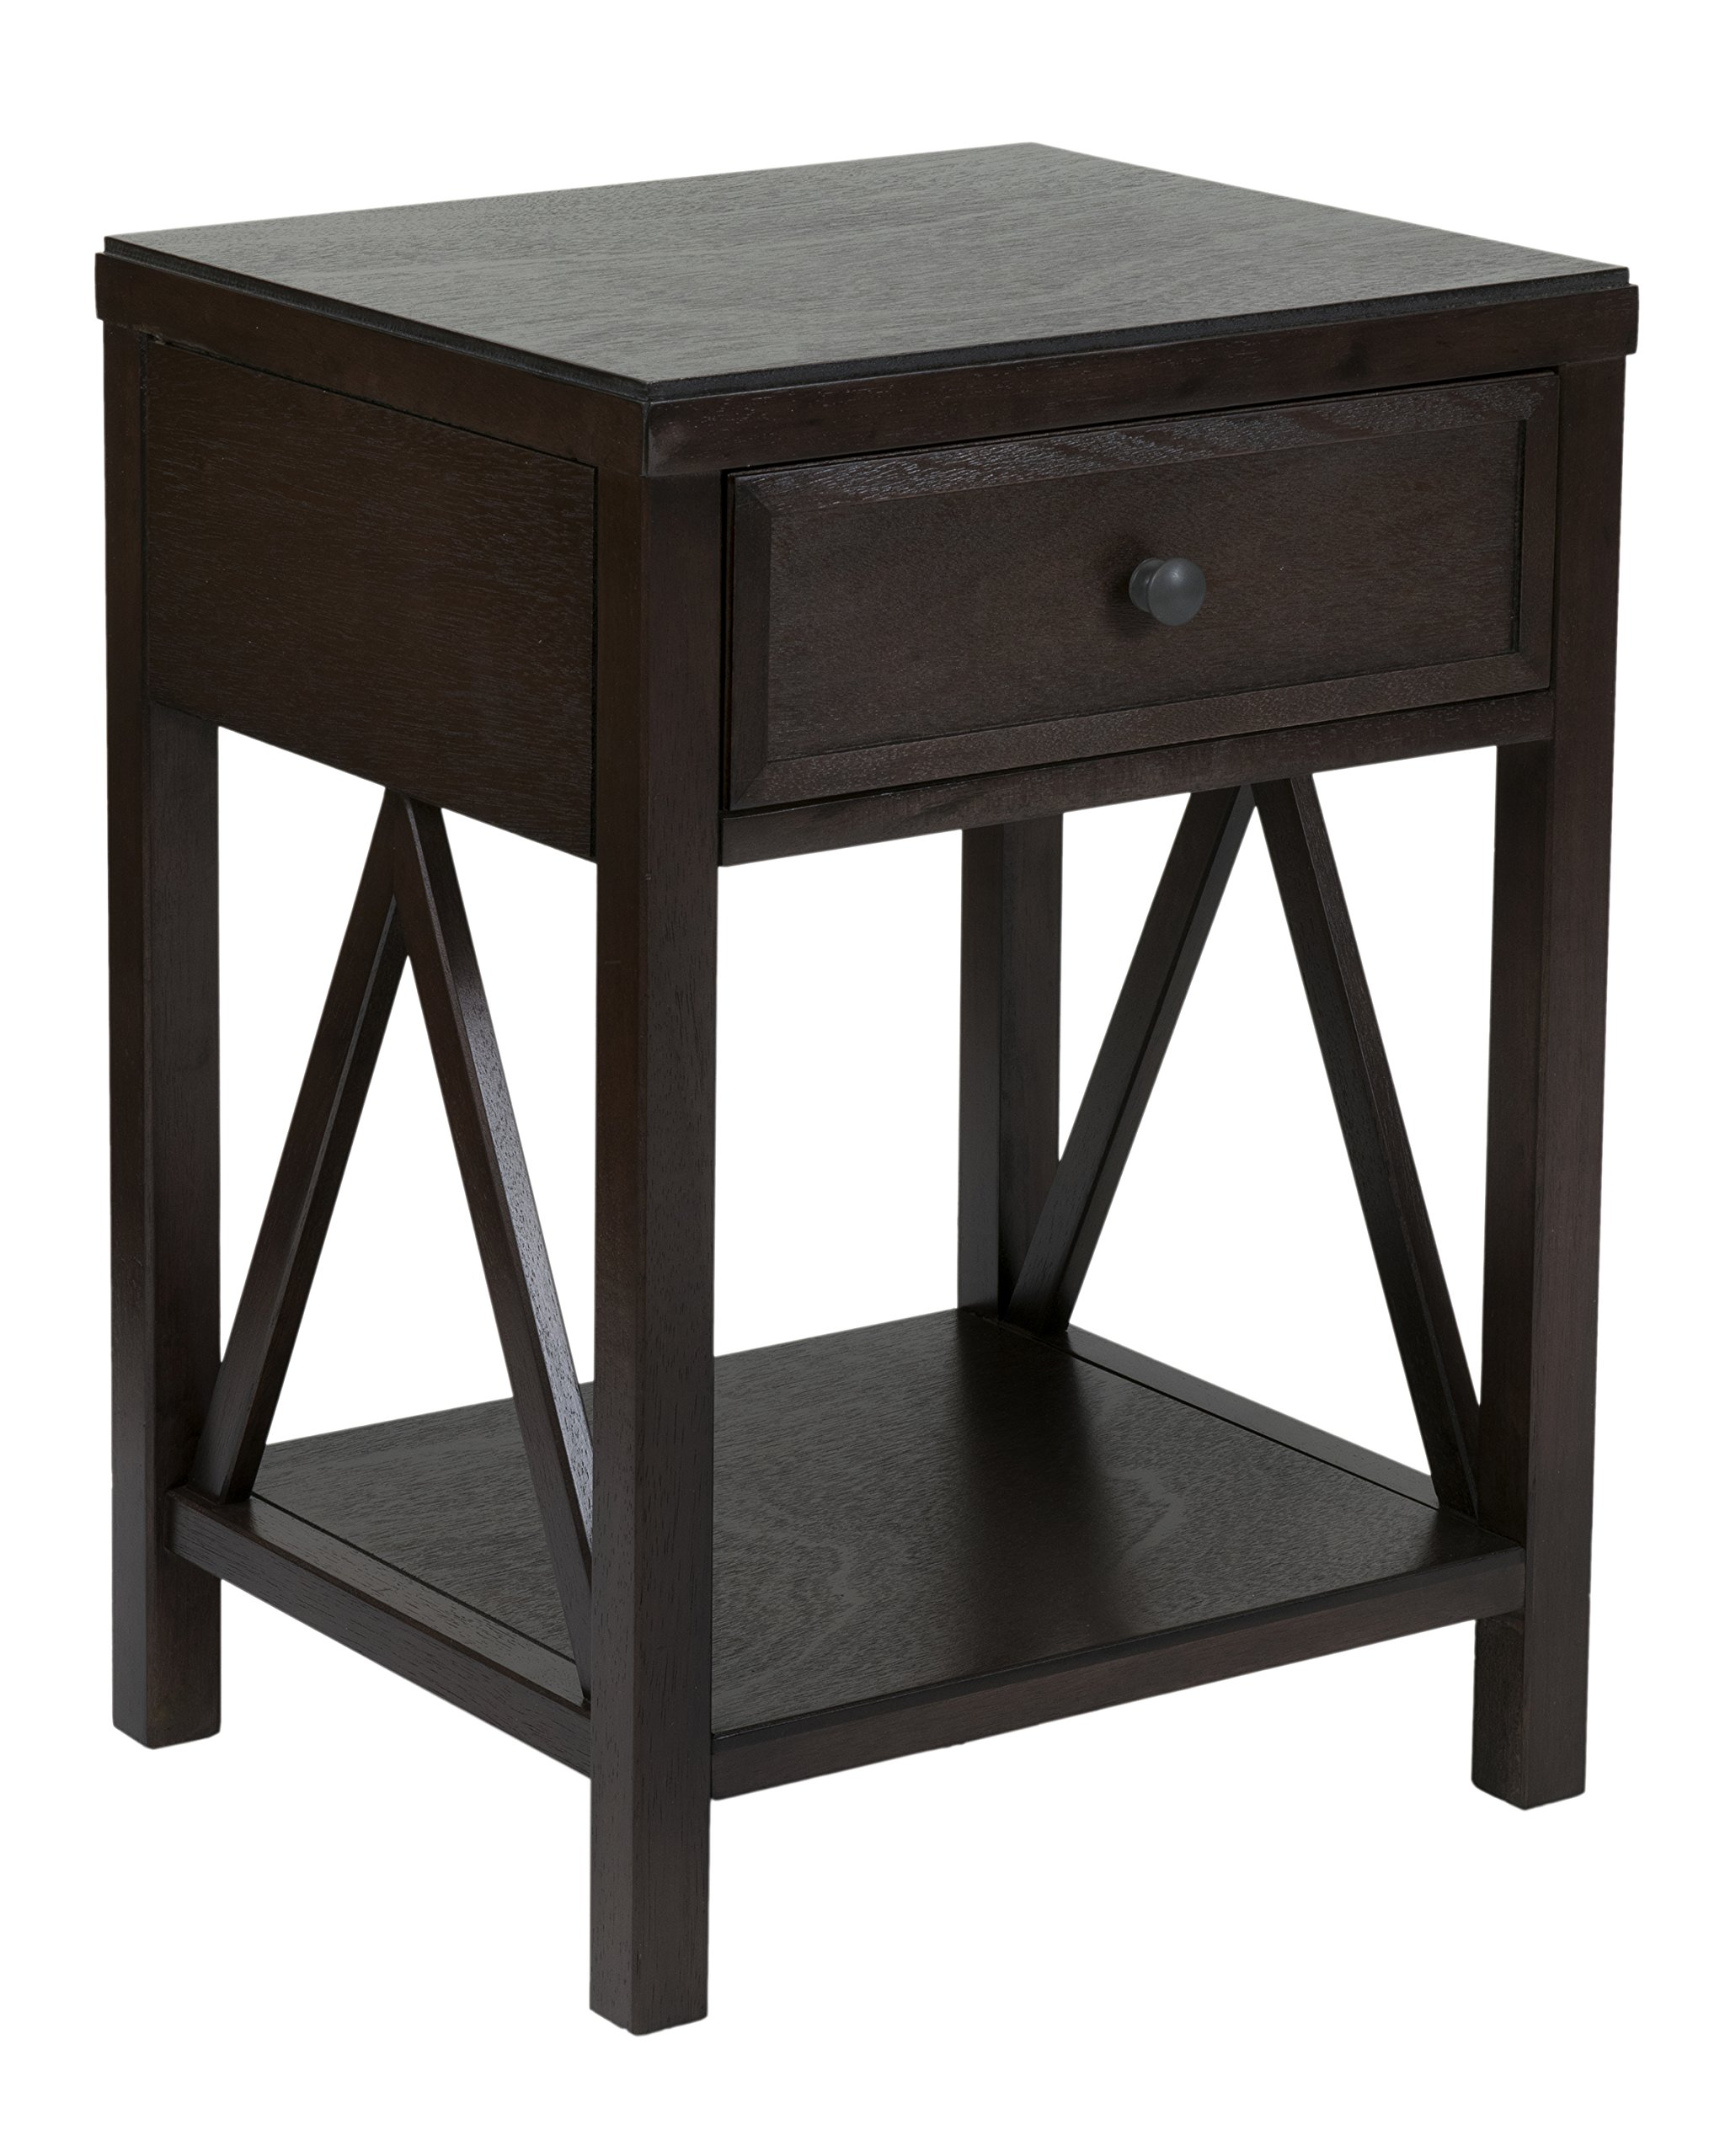 East at Main Wilcox Acacia Wood Square Accent Table, Brown, (15'' L x 17'' W x 23'' H)